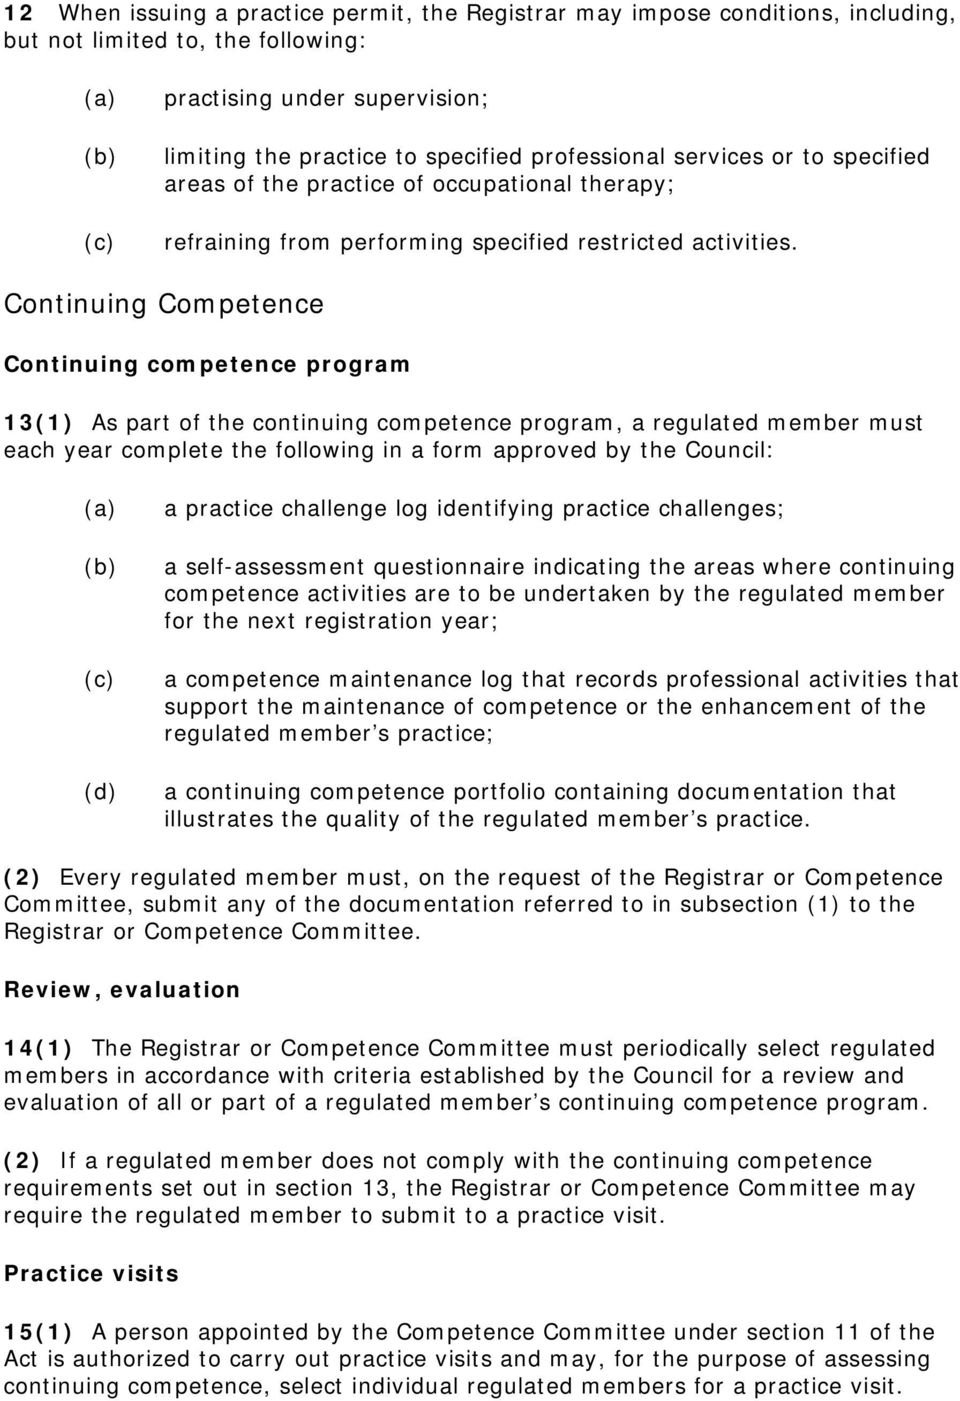 Continuing Competence Continuing competence program 13(1) As part of the continuing competence program, a regulated member must each year complete the following in a form approved by the Council: a